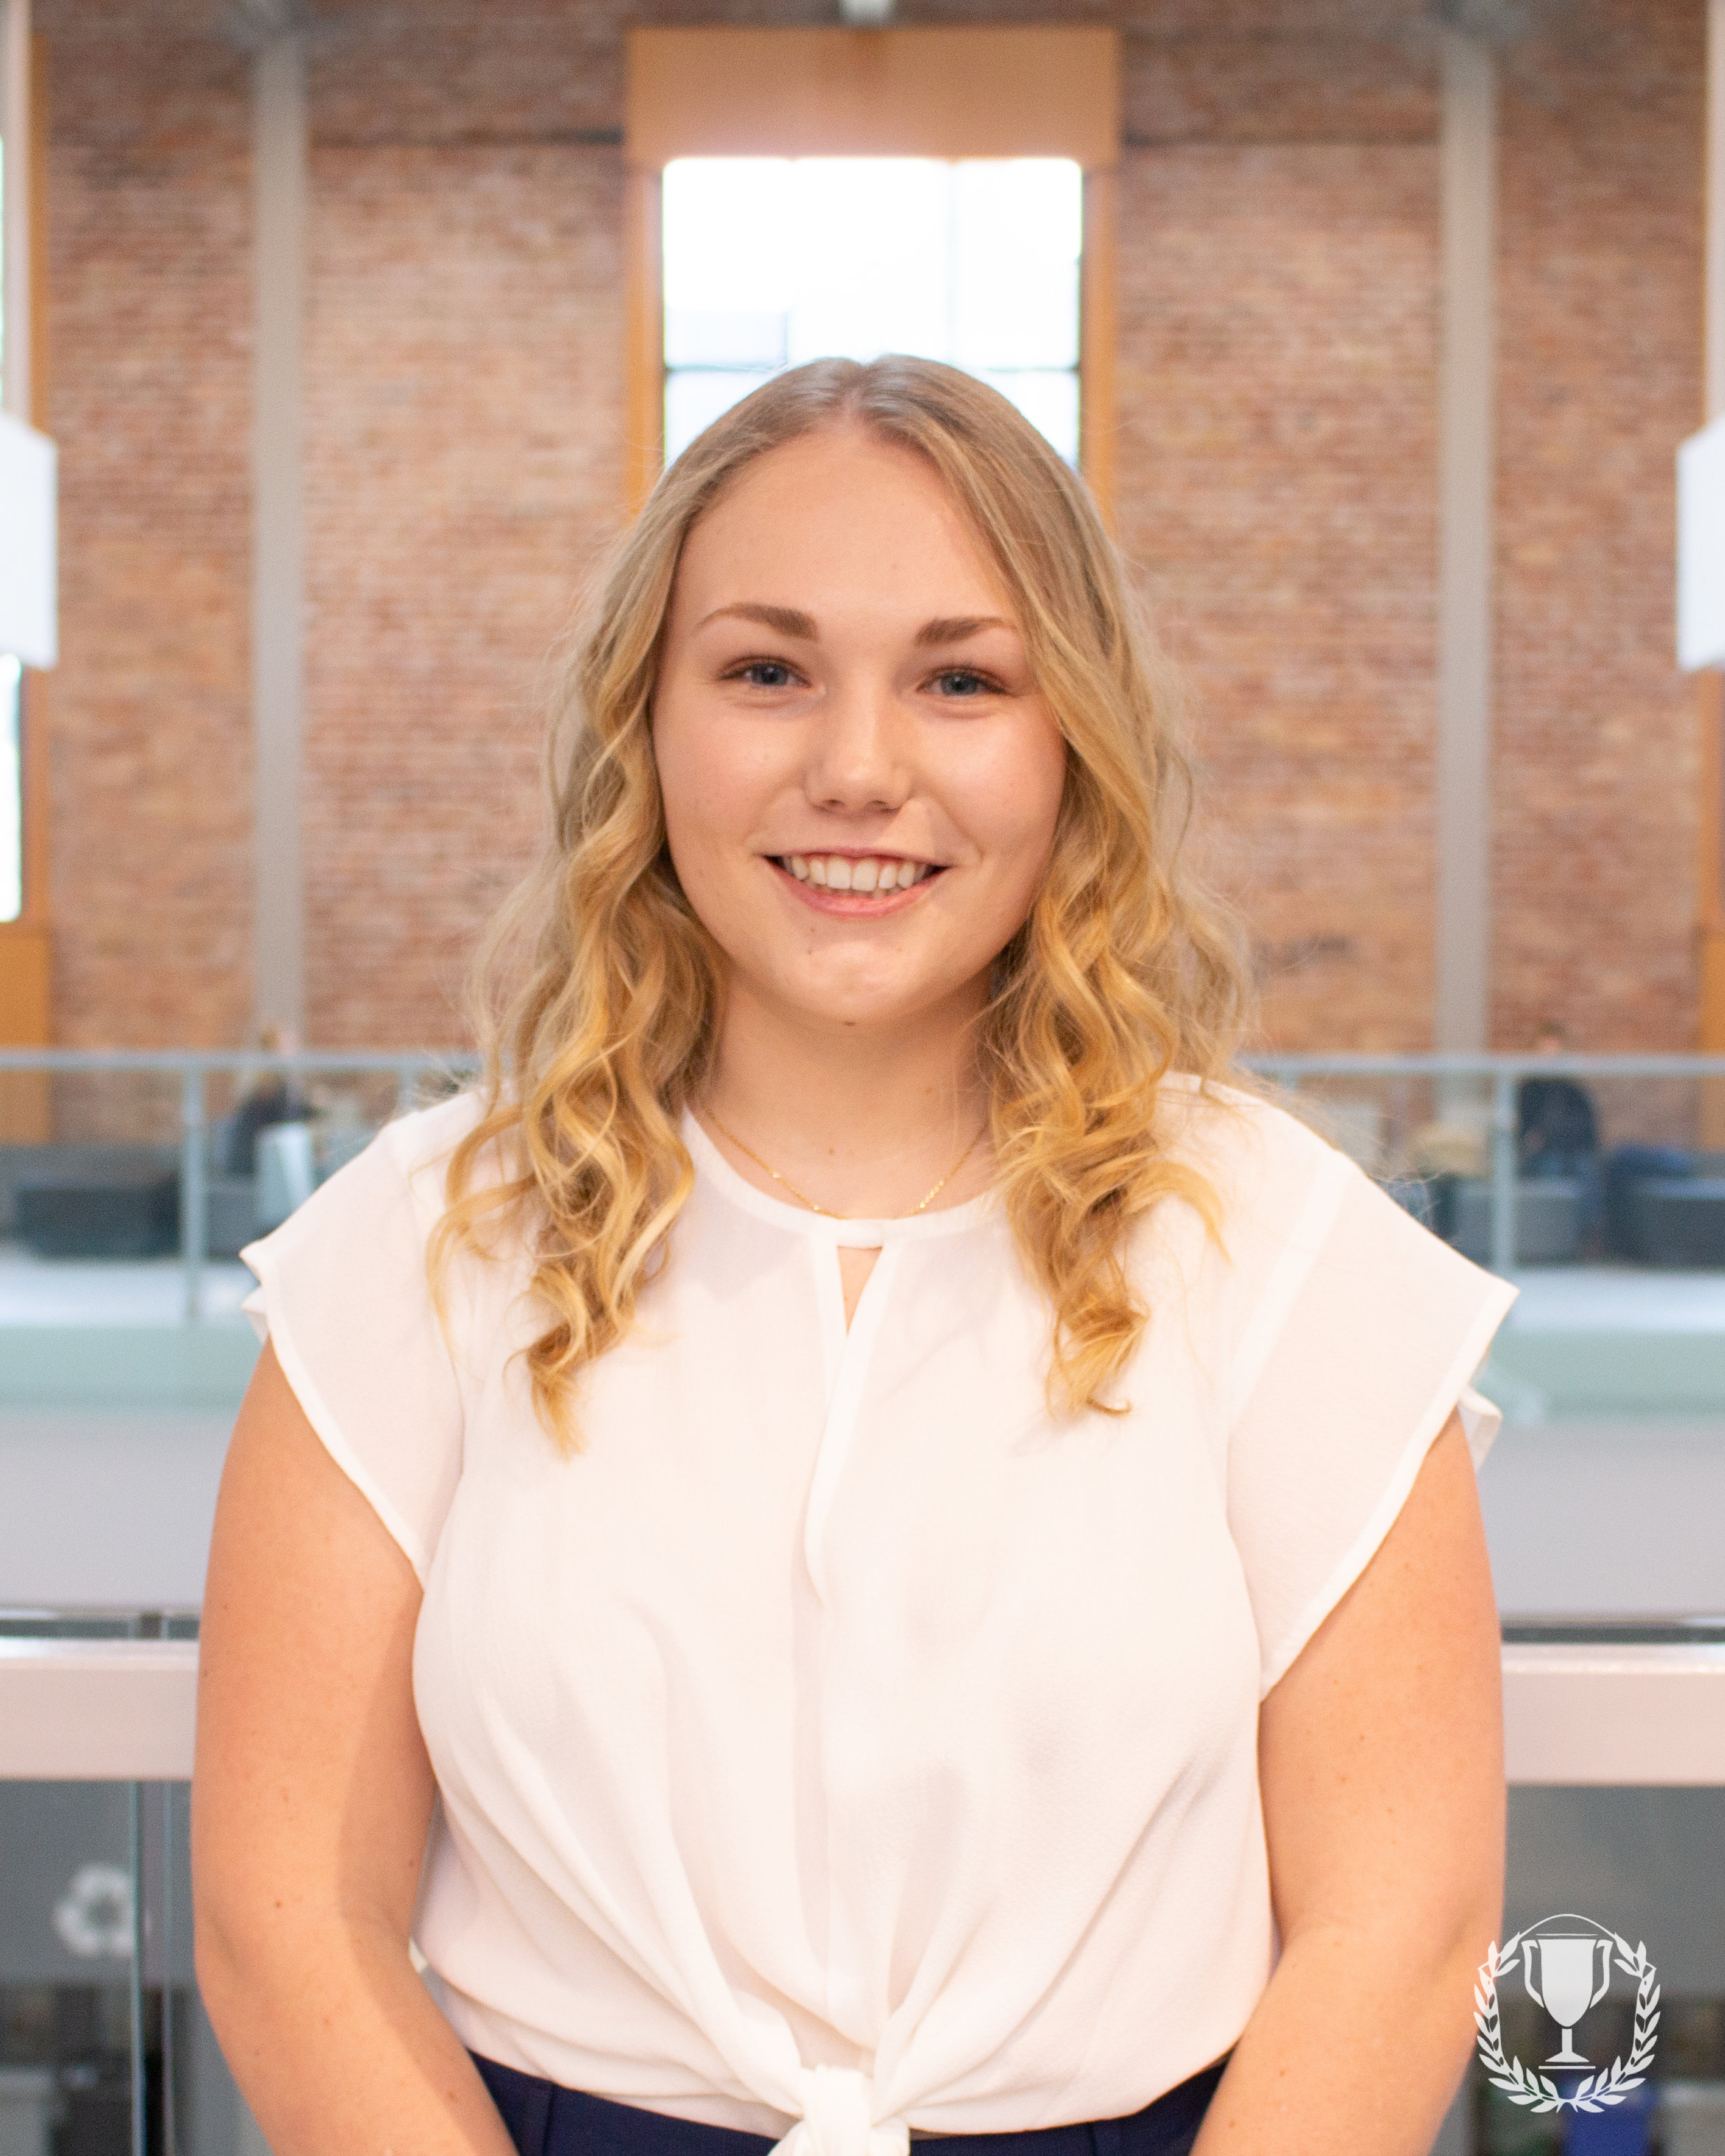 Sarah Ellmann - Marketing & Publications Coordinator   Sarah Ellmann is excited to be a part of the I.C.B.C. family for the 42nd year of competition! She is eager to work alongside the rest of the team to help create the best I.C.B.C. yet! As Marketing and Publications Coordinator she is looking forward to revamping the I.C.B.C. brand and sharing everything I.C.B.C. on social media. Sarah is an avocado enthusiast and is always down for brunch and a walk on the beach or through the forest back in BC.